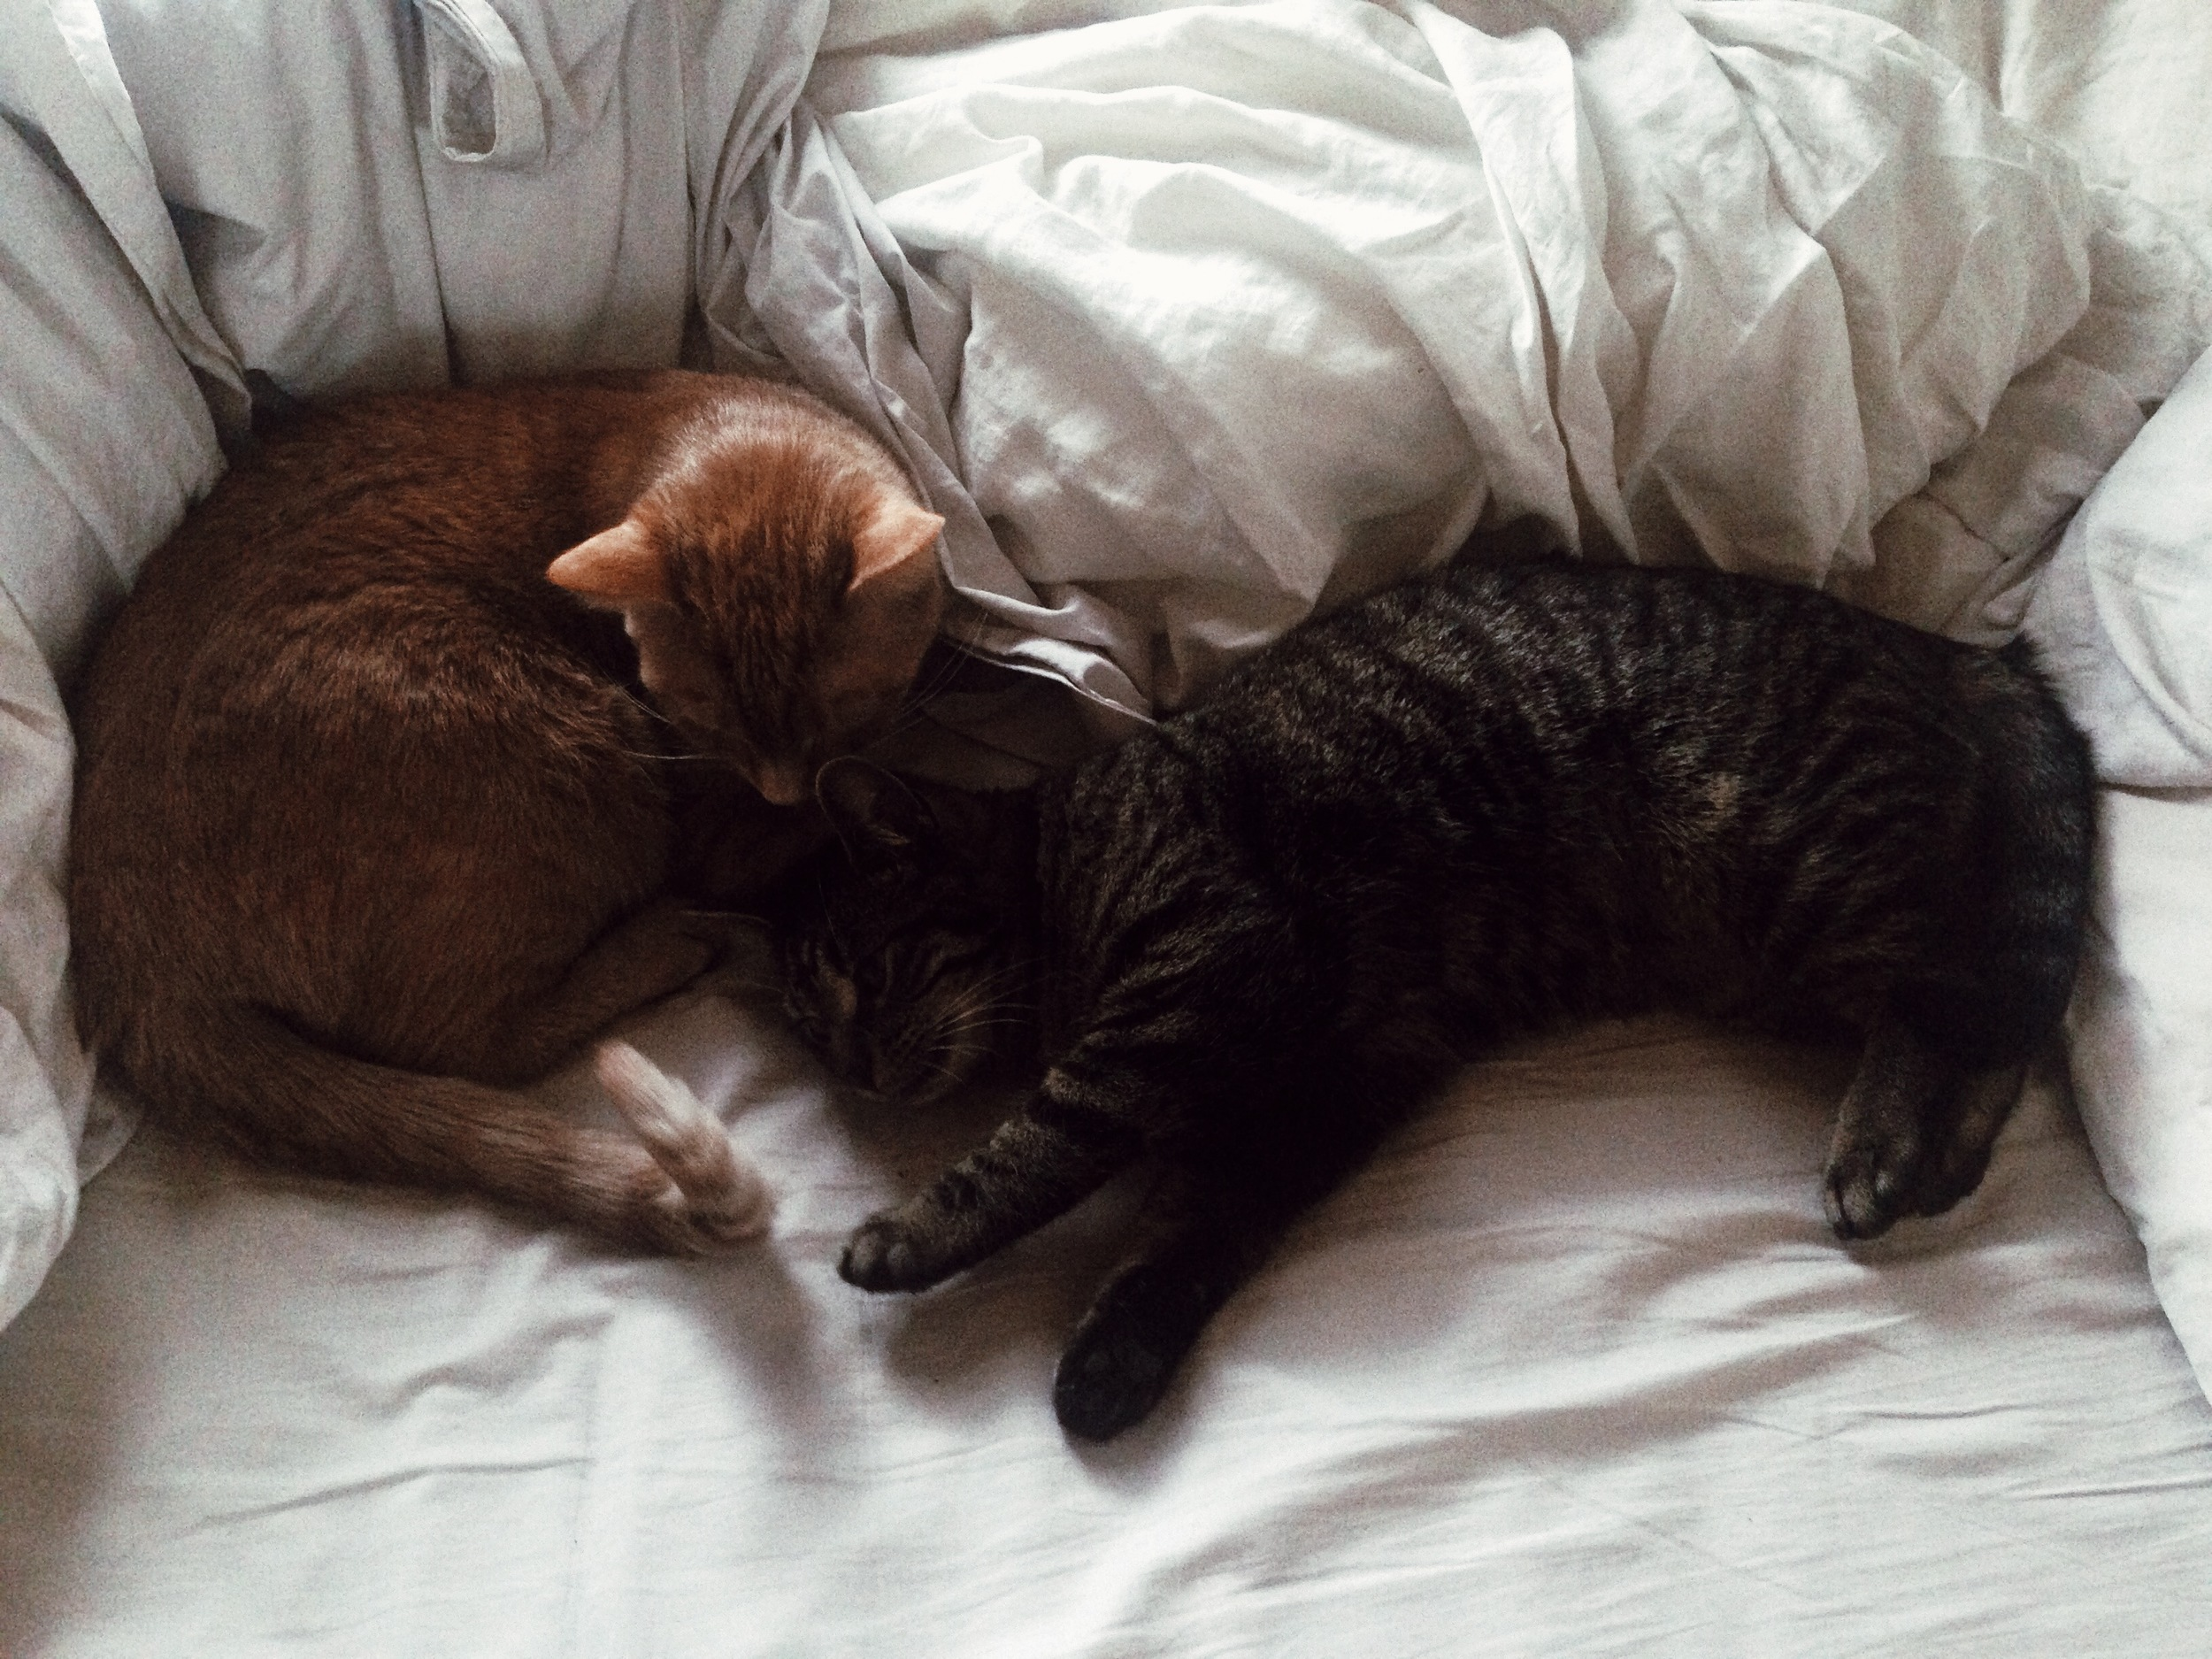 My cats because their love is infectious.